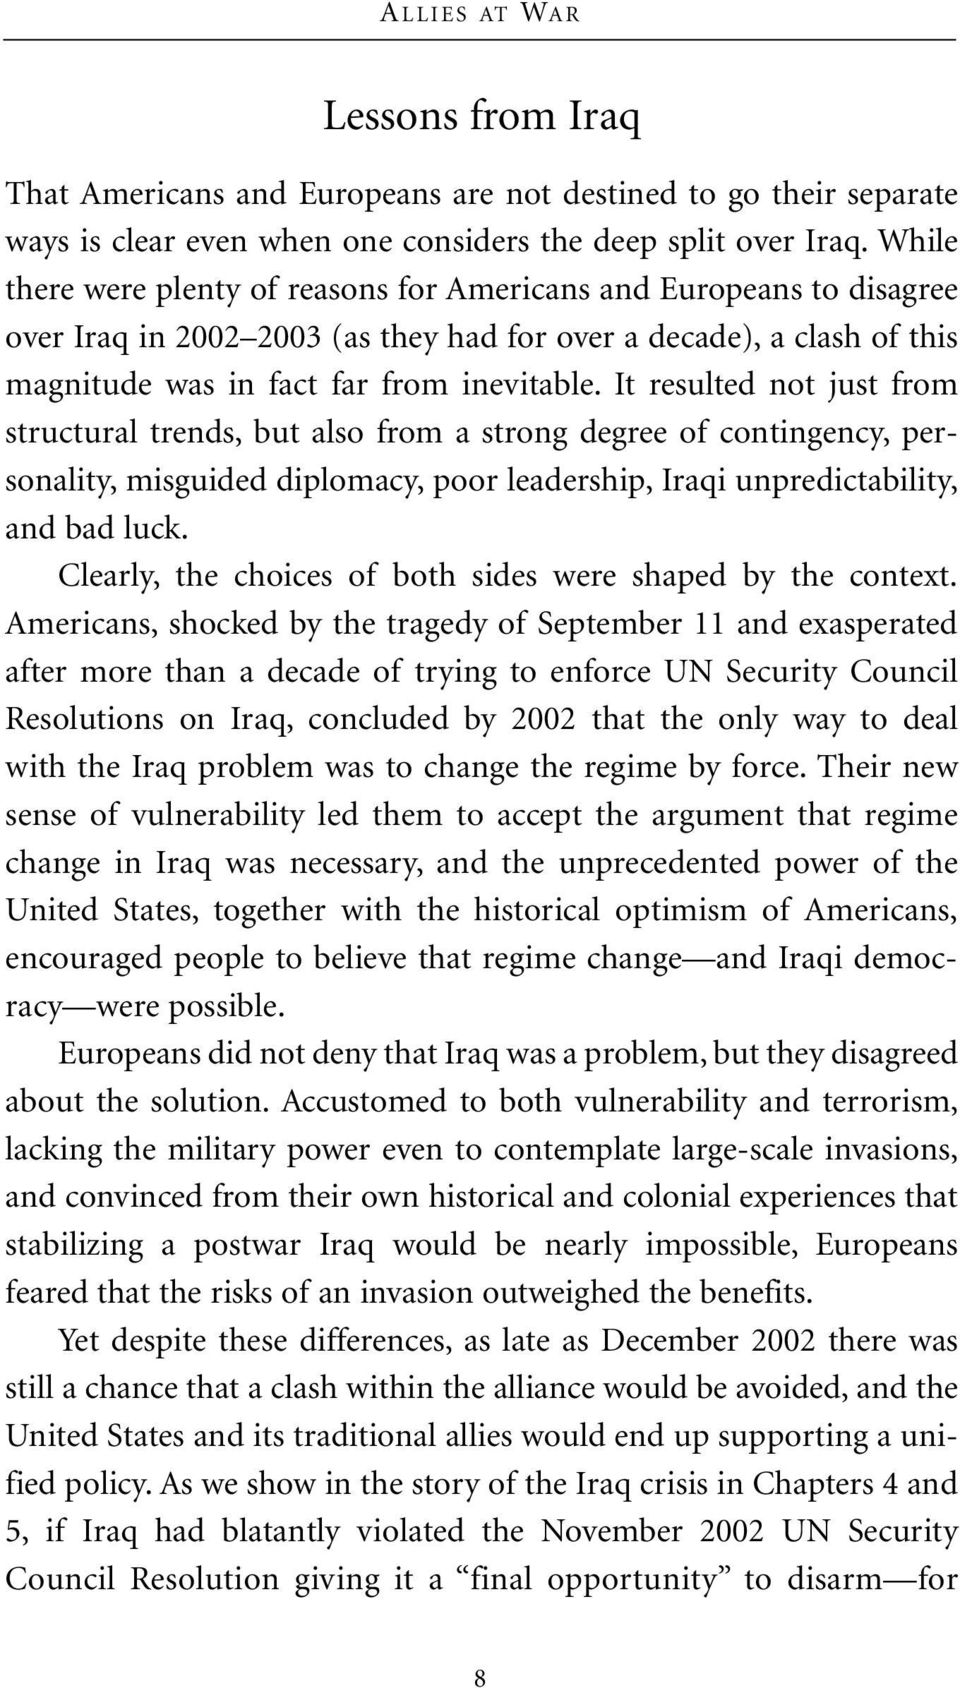 It resulted not just from structural trends, but also from a strong degree of contingency, personality, misguided diplomacy, poor leadership, Iraqi unpredictability, and bad luck.